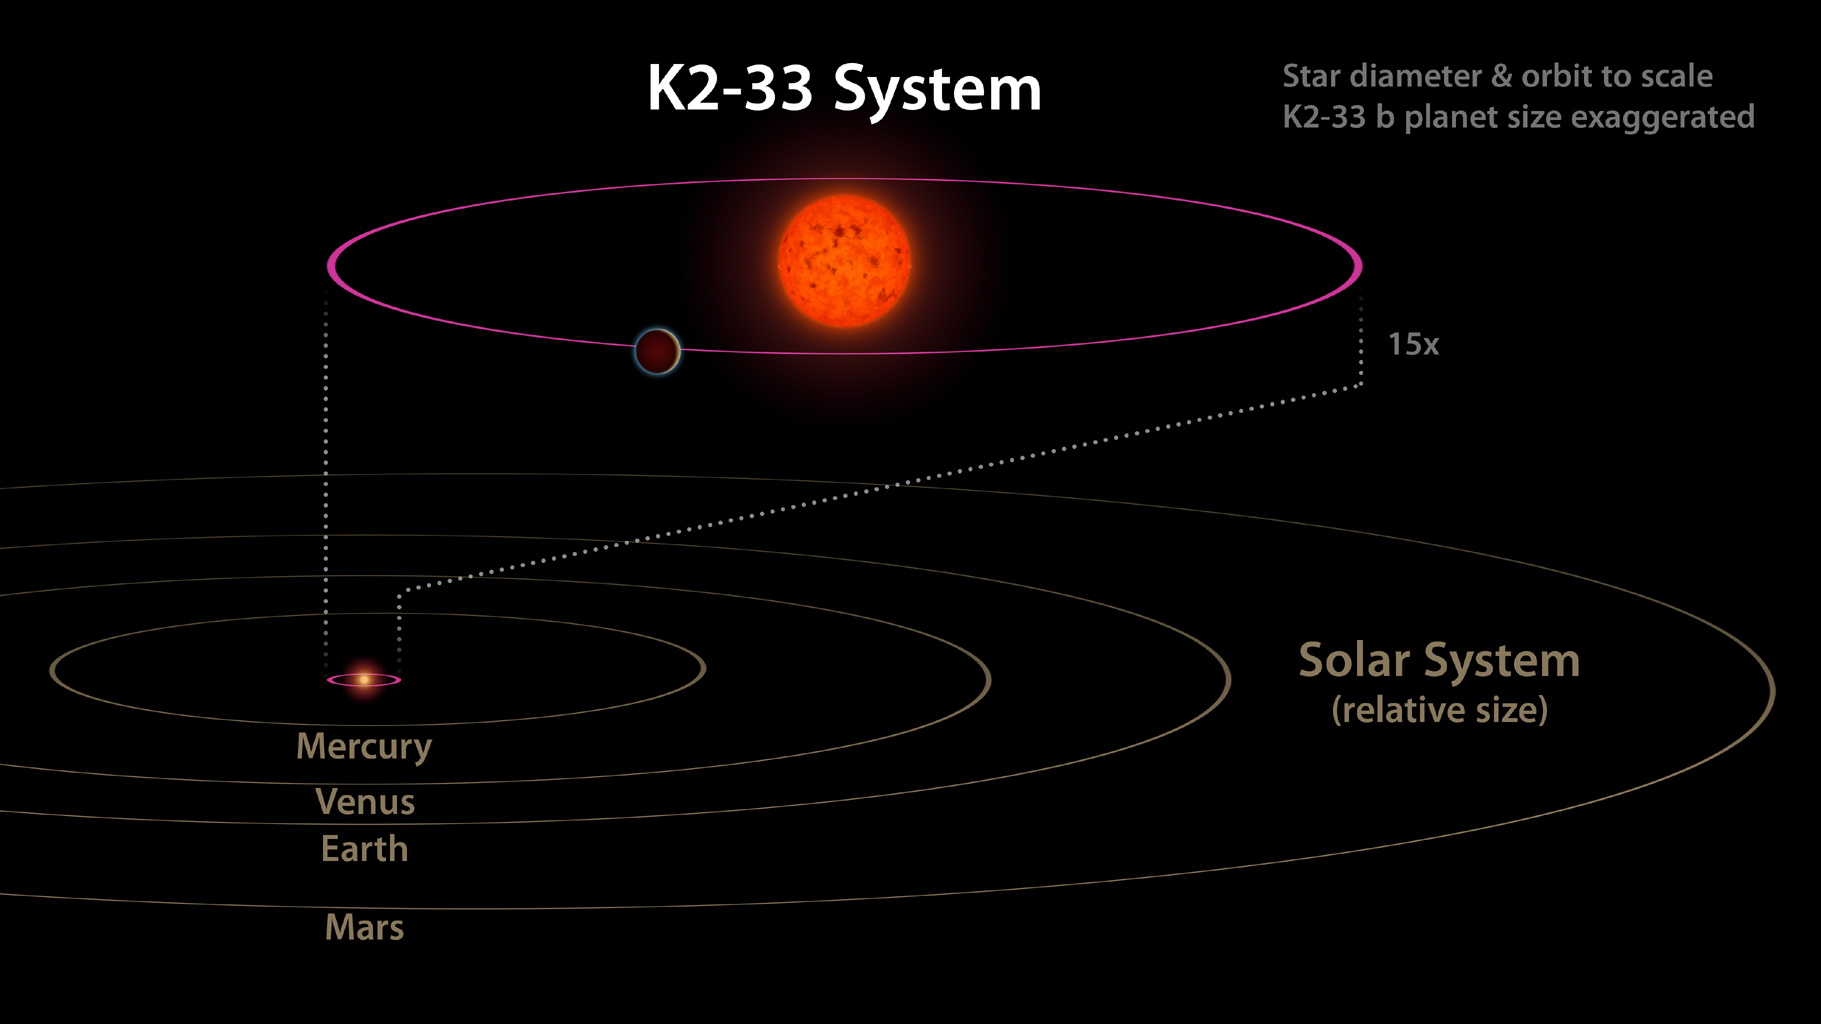 Space Images Comparing K2 33 To Our Solar System Diagram In The